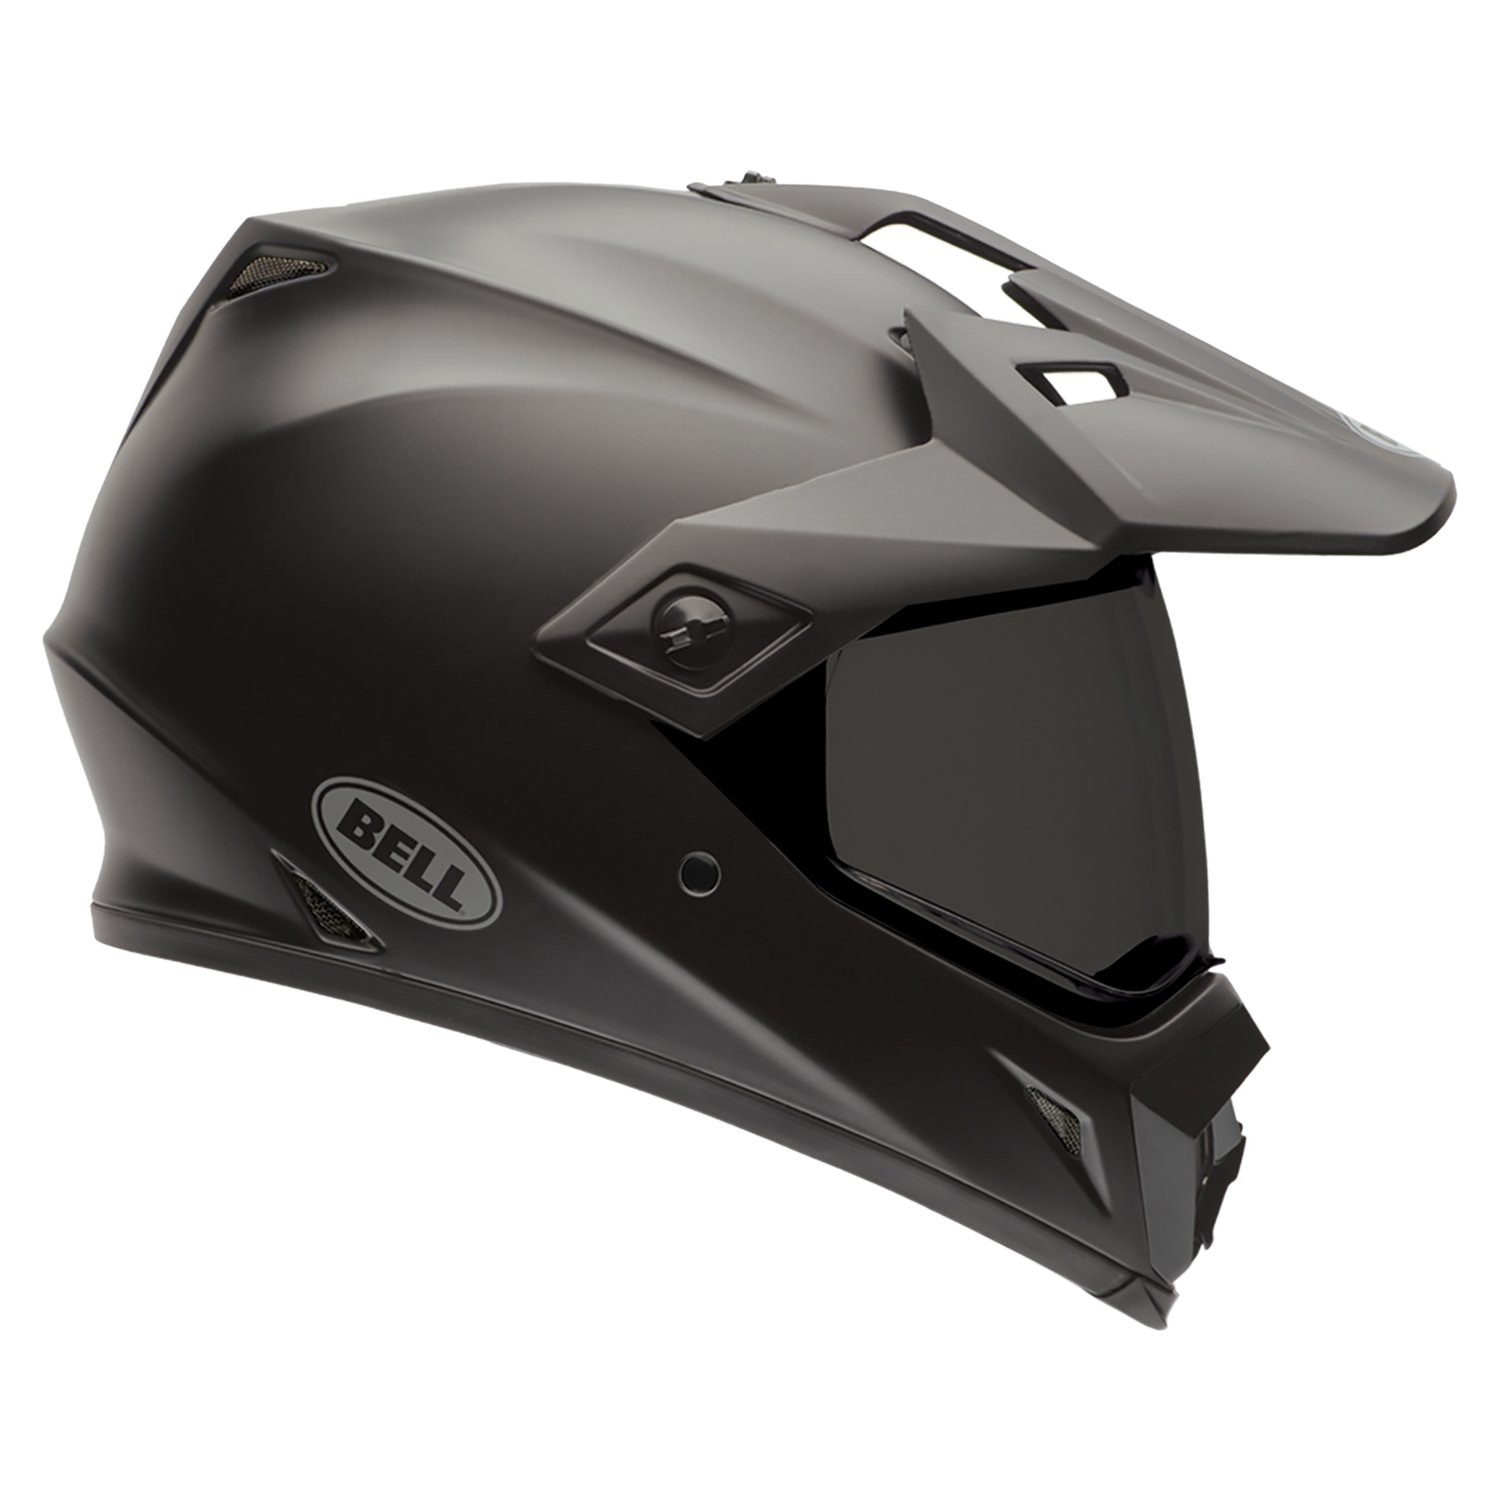 Bell Caschi MX 2015 MX-9 SolidHigh Visiblity Adventure Adult Casco, Solid Nero Opaco, L